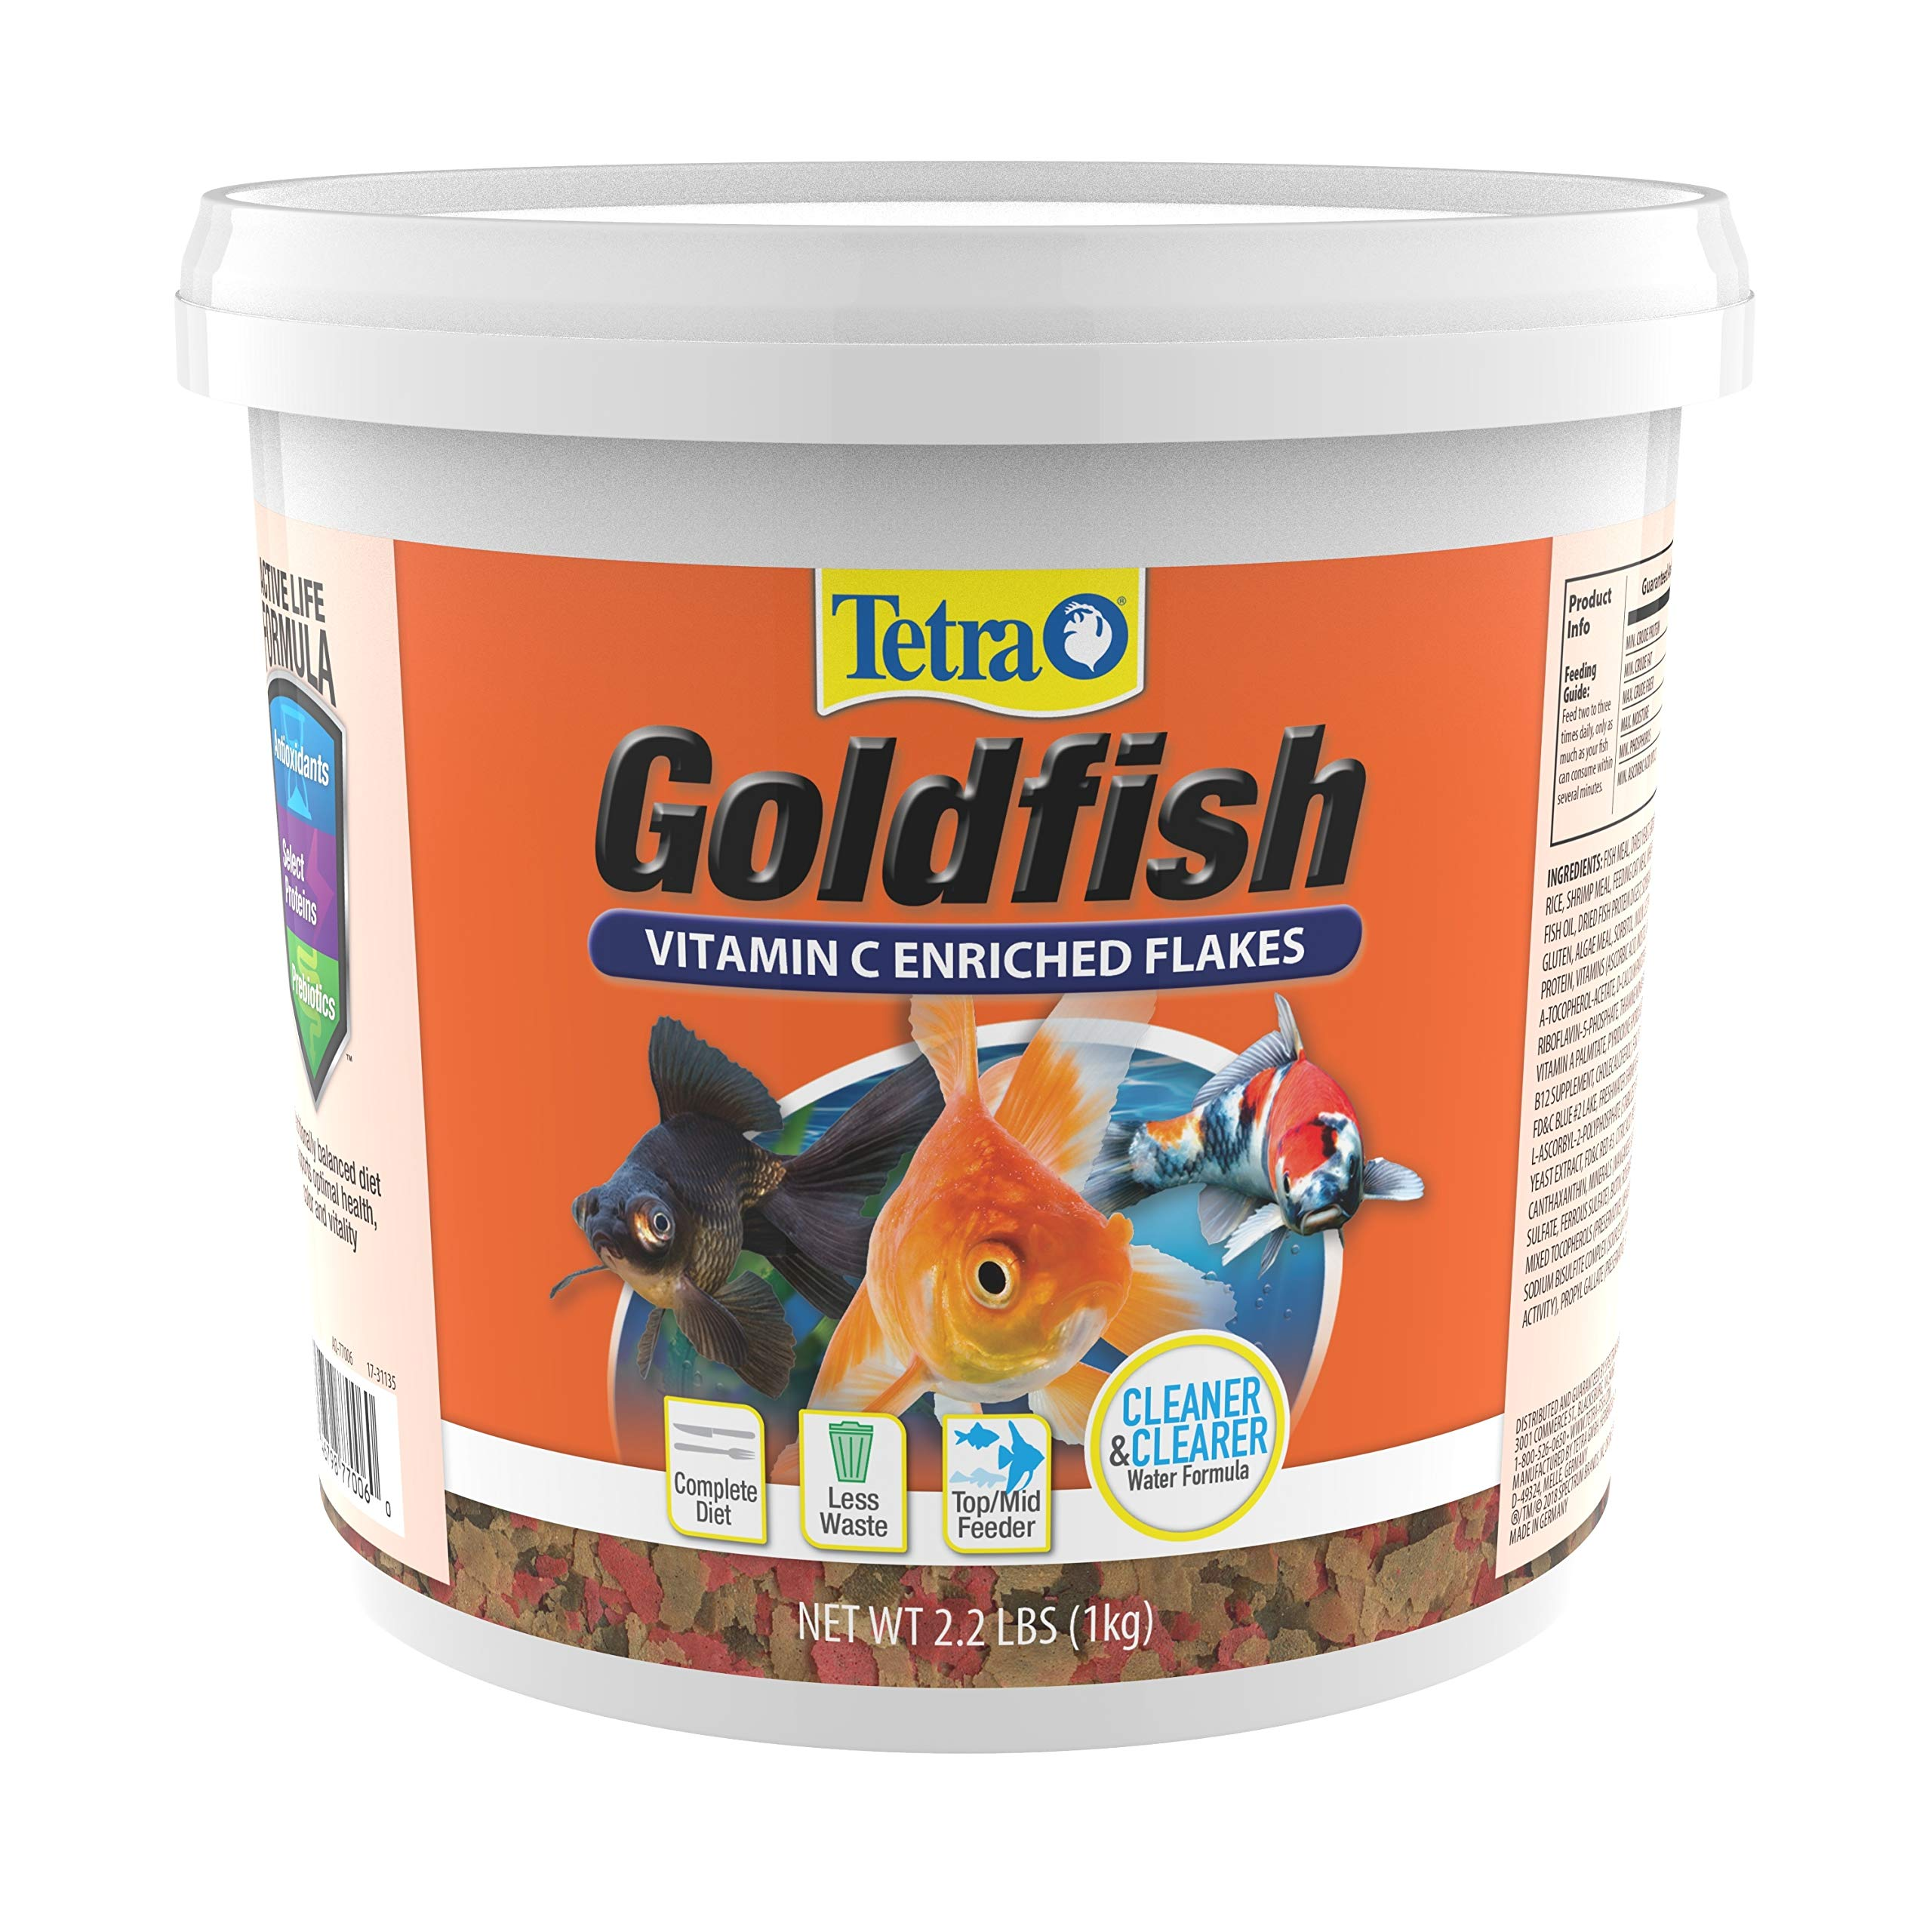 TetraFin Balanced Diet Goldfish Flake Food, 2.2 Pound (Pack of 1) by Tetra